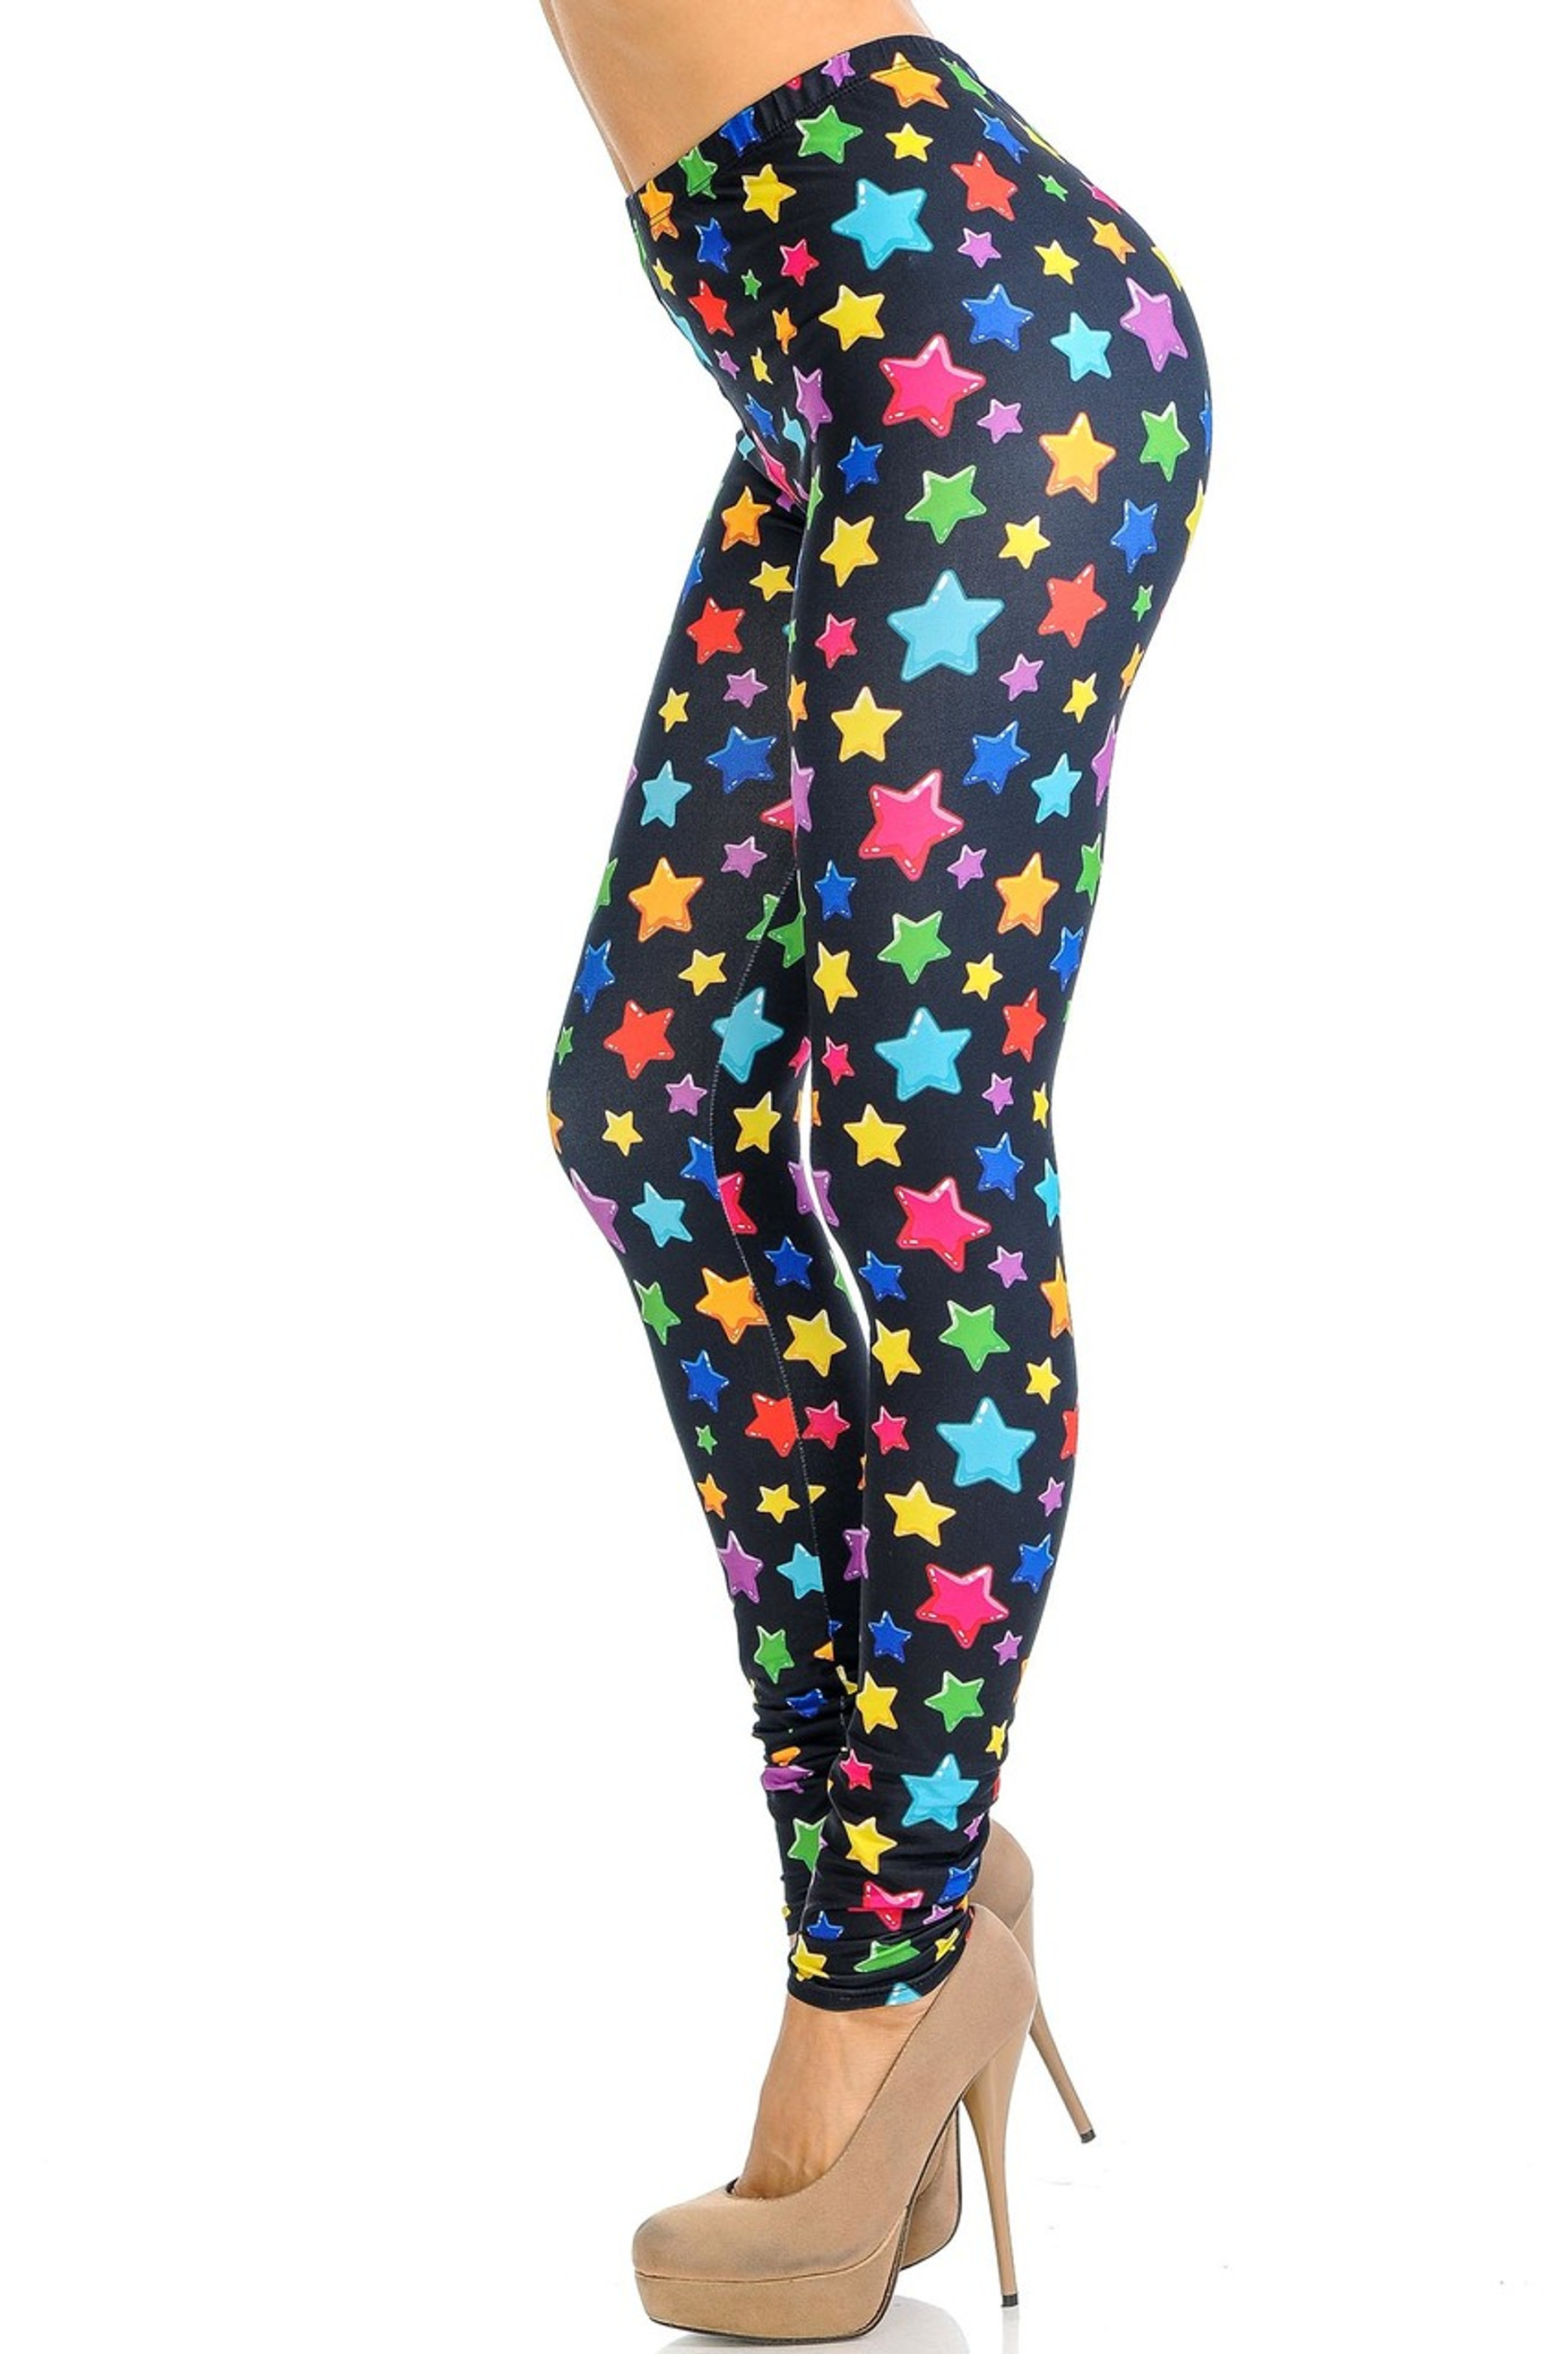 Creamy Soft Colorful Cartoon Stars Leggings - Signature Collection